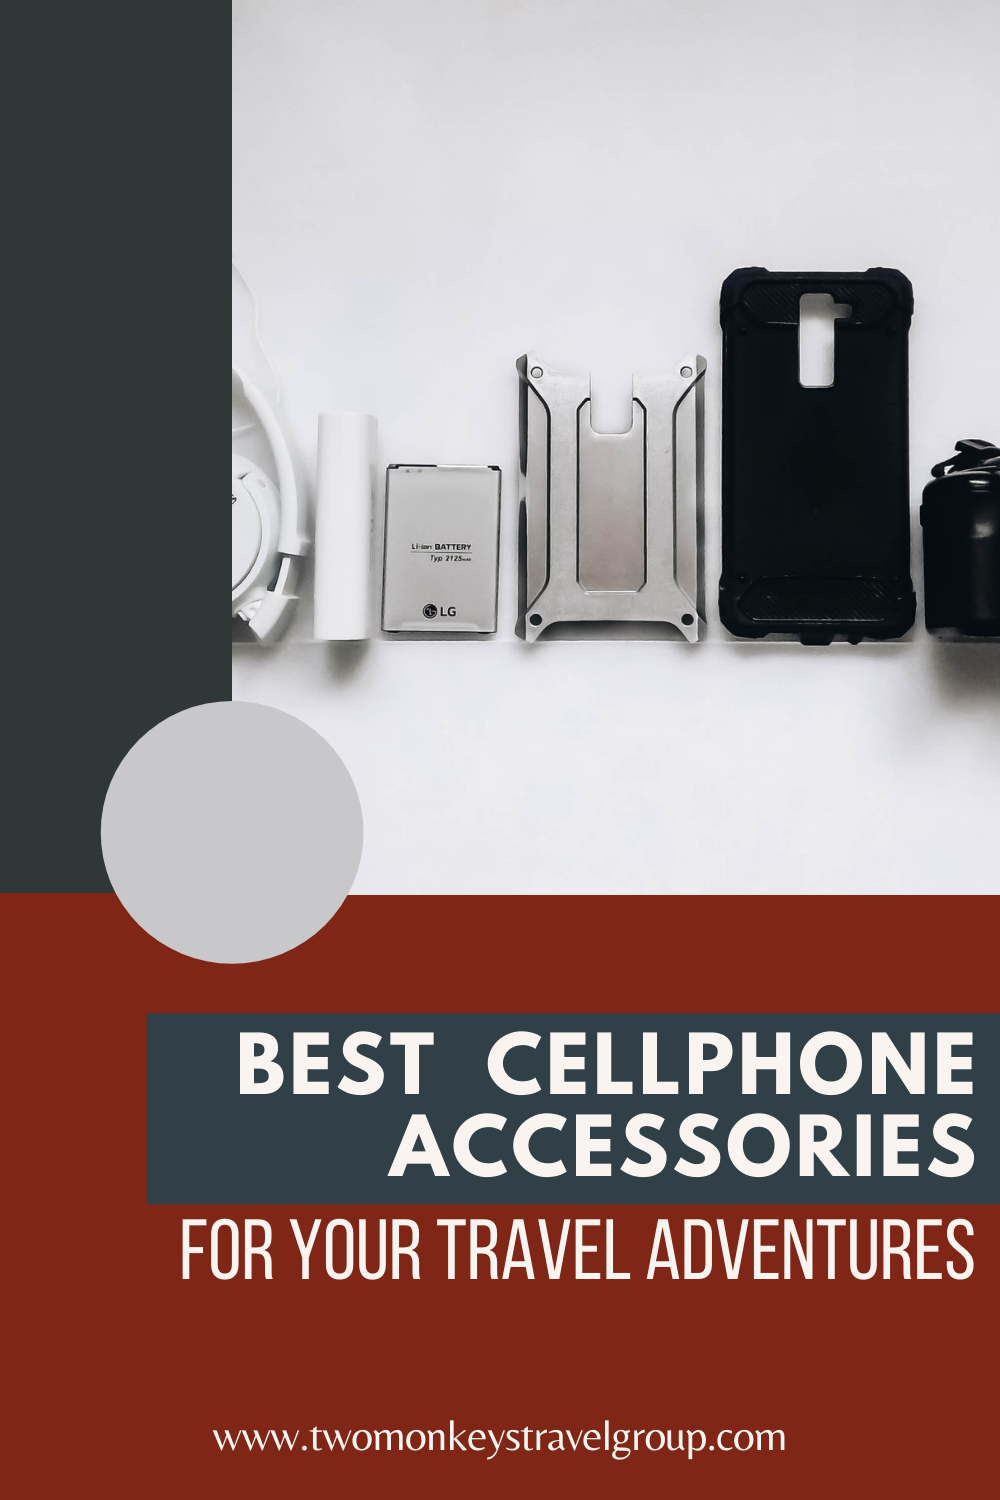 Best 10 Cellphone Accessories for Your Travel Adventures